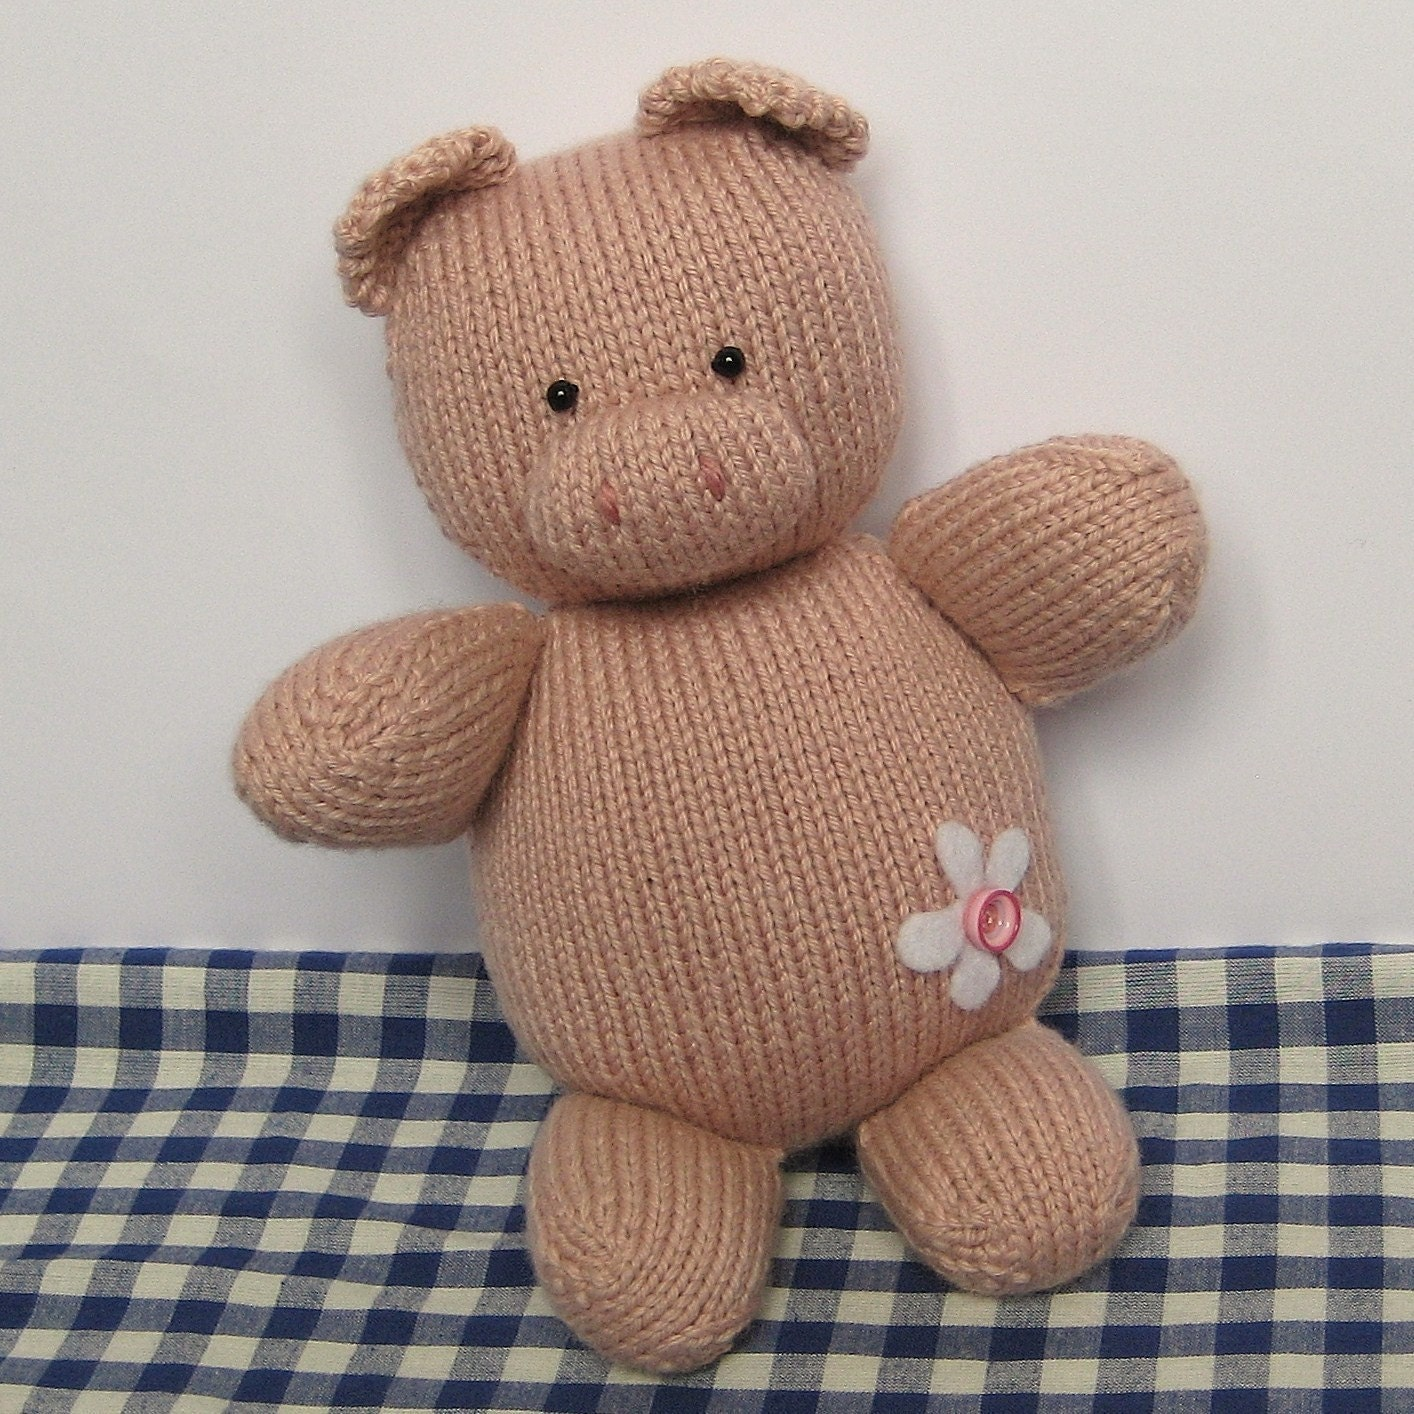 Beginner Knitting Patterns Stuffed Animals : Penny Pig toy animal knitting pattern by fluffandfuzz on Etsy Craftjuice Ha...